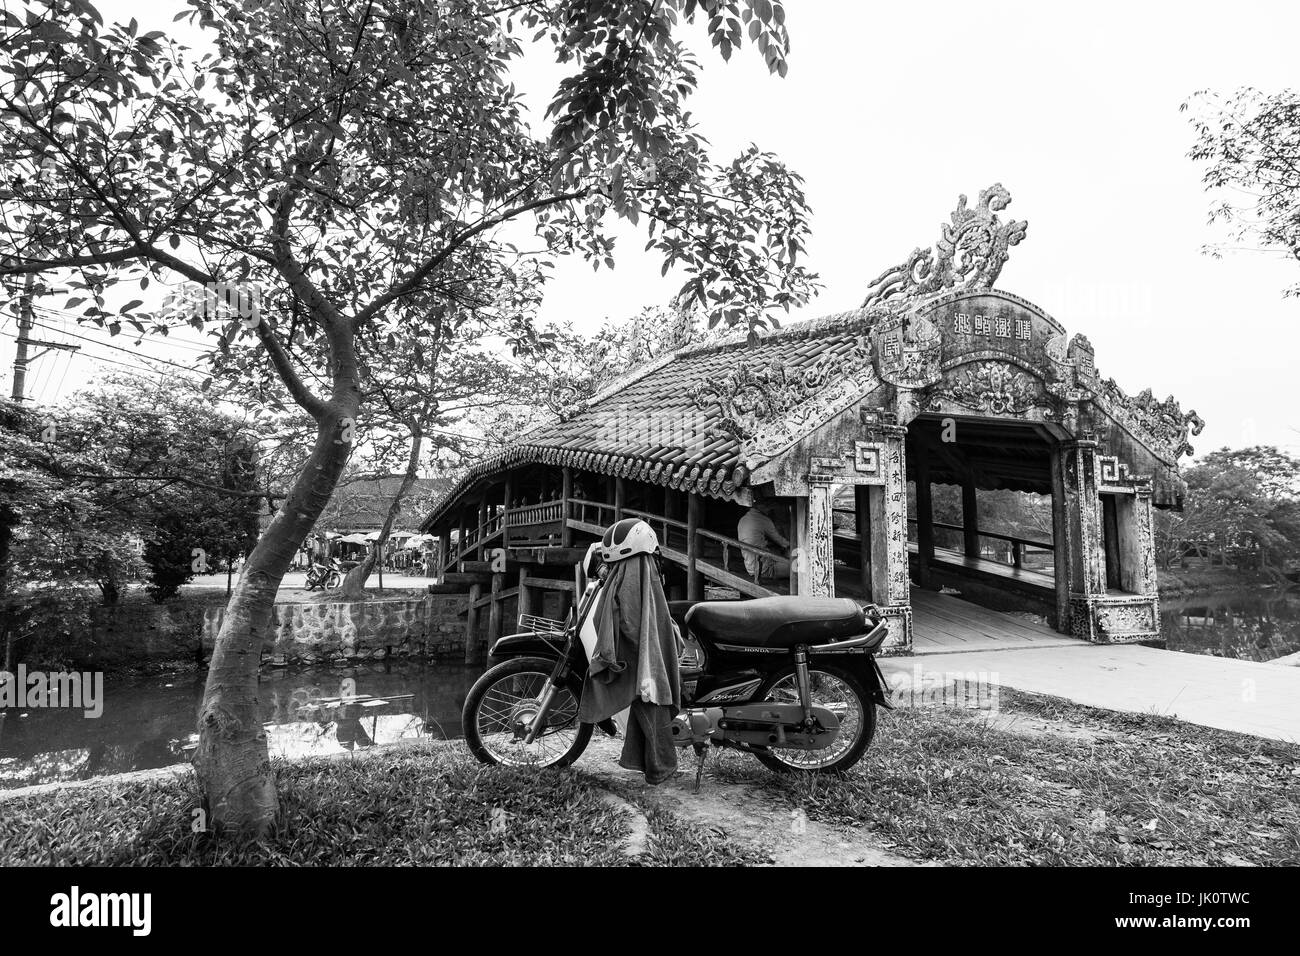 Thanh Toan wooden covered bridge in black and white - Thuy Thanh, Vietnam - March 2017 - Stock Image